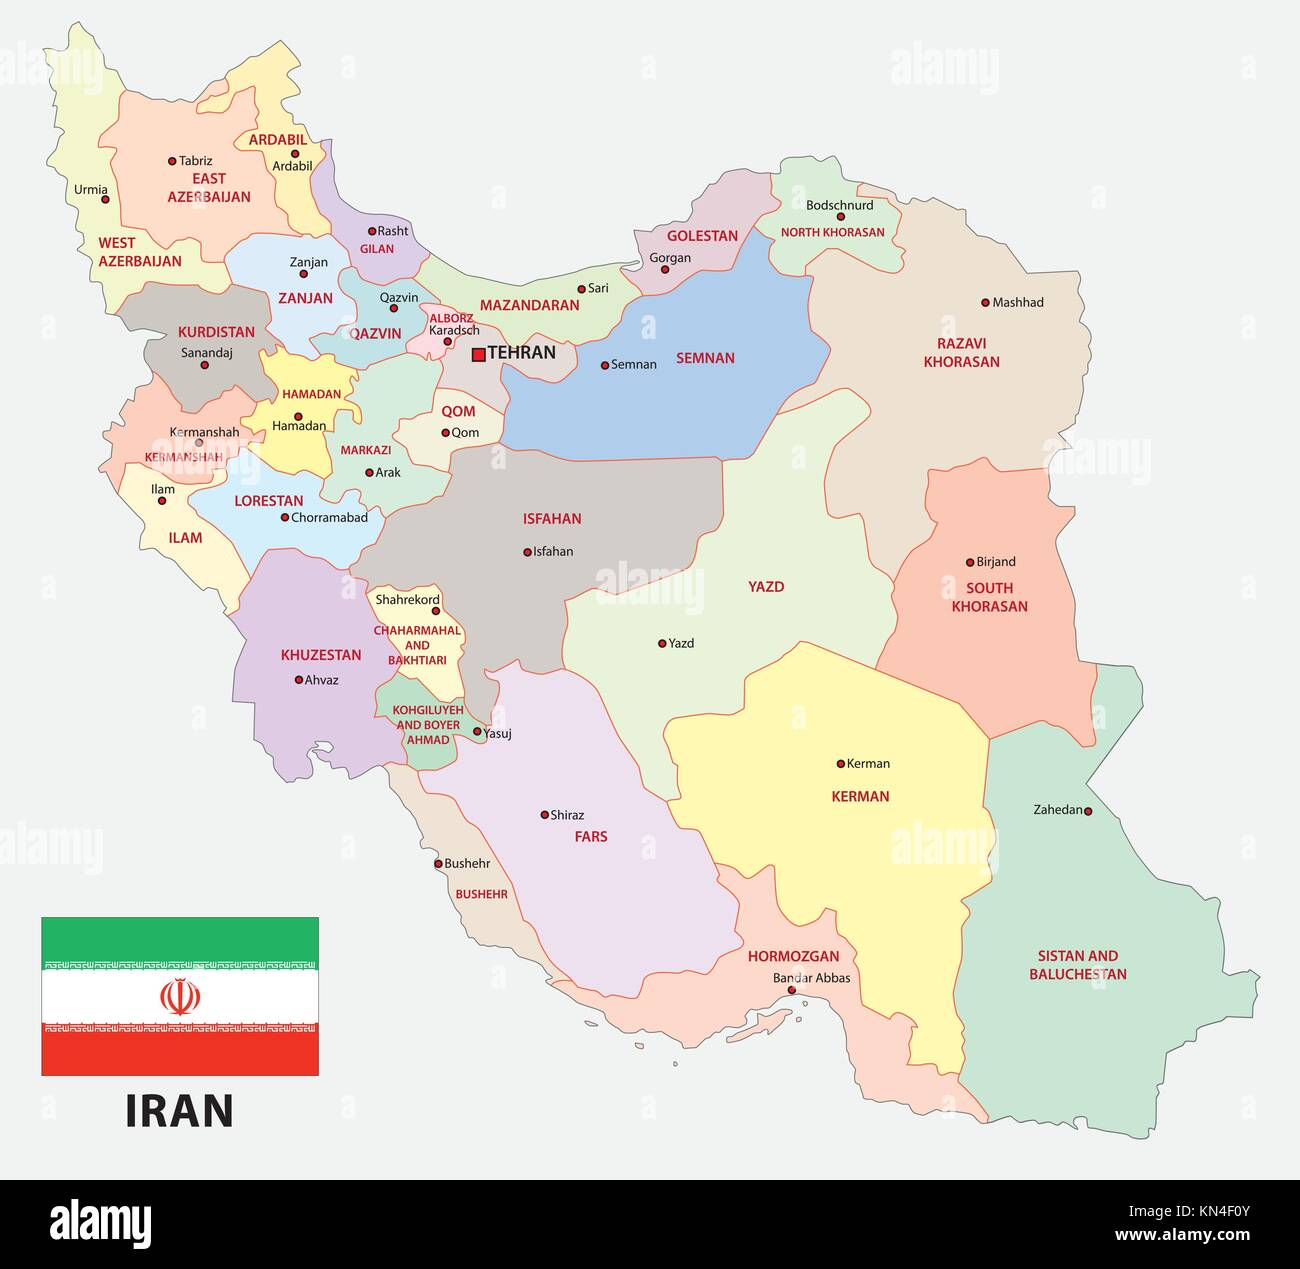 Iran Administrative And Political Vector Map With Flag Stock Vector Image Art Alamy